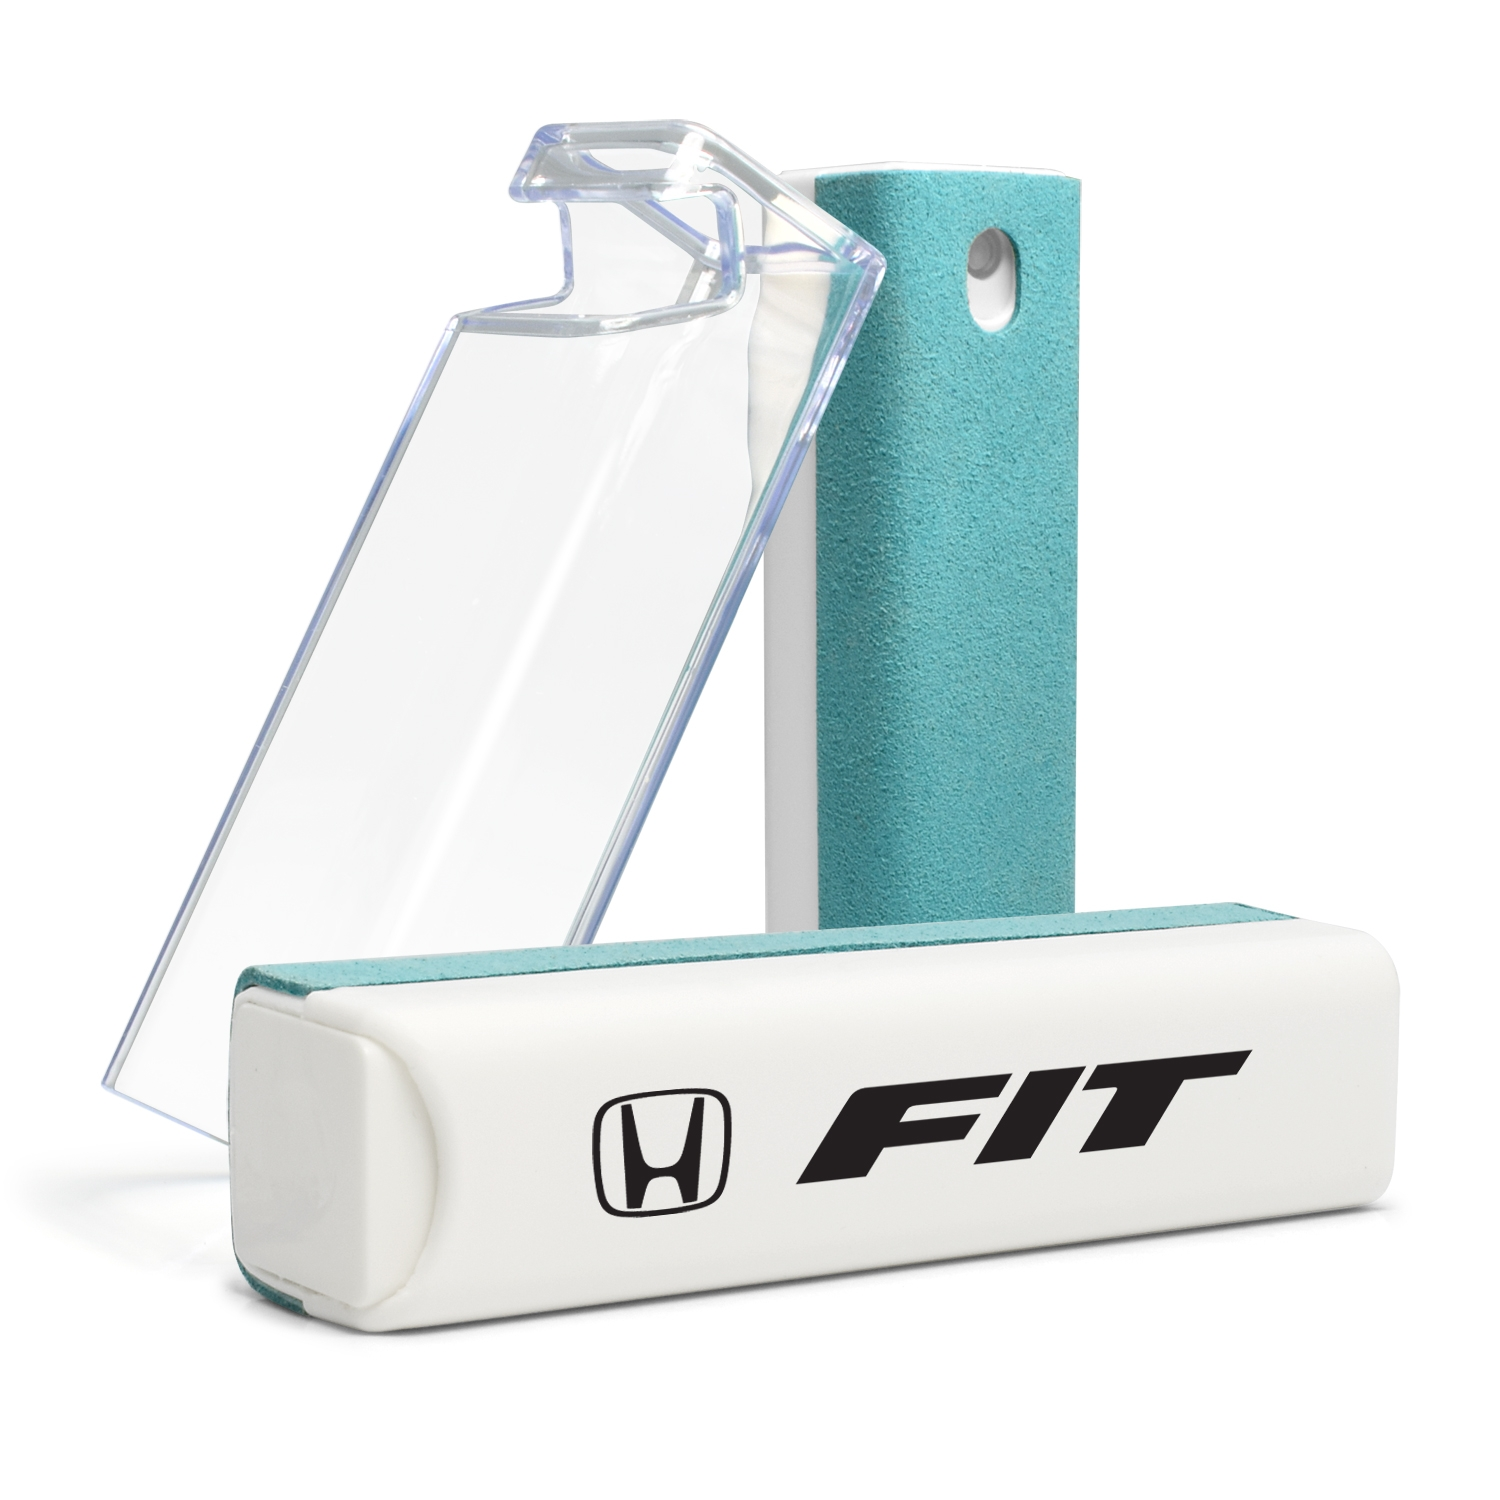 Honda Fit All-in-One Blue Wipe Navigation Screen Cleaner with Clear Cell Phone Stand